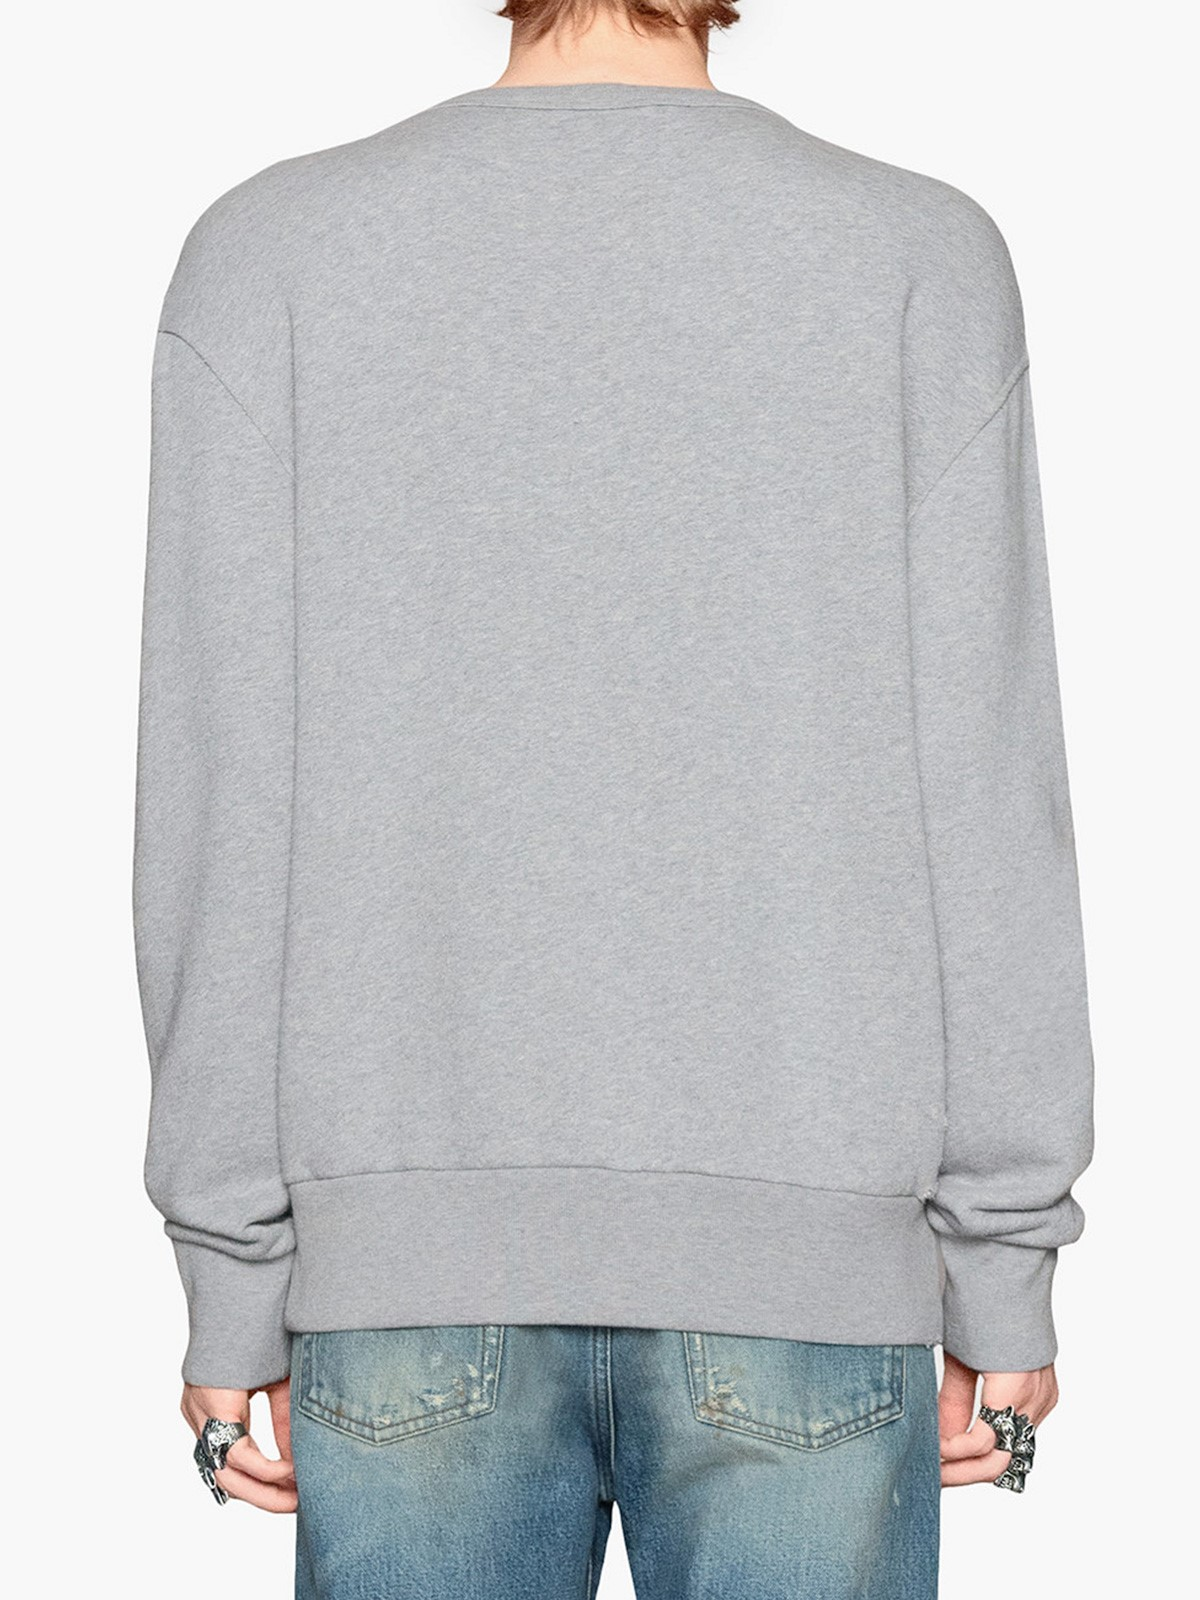 7630a42dd gucci HOLLYWOOD PLANET SWEATSHIRT available on montiboutique.com - 22088